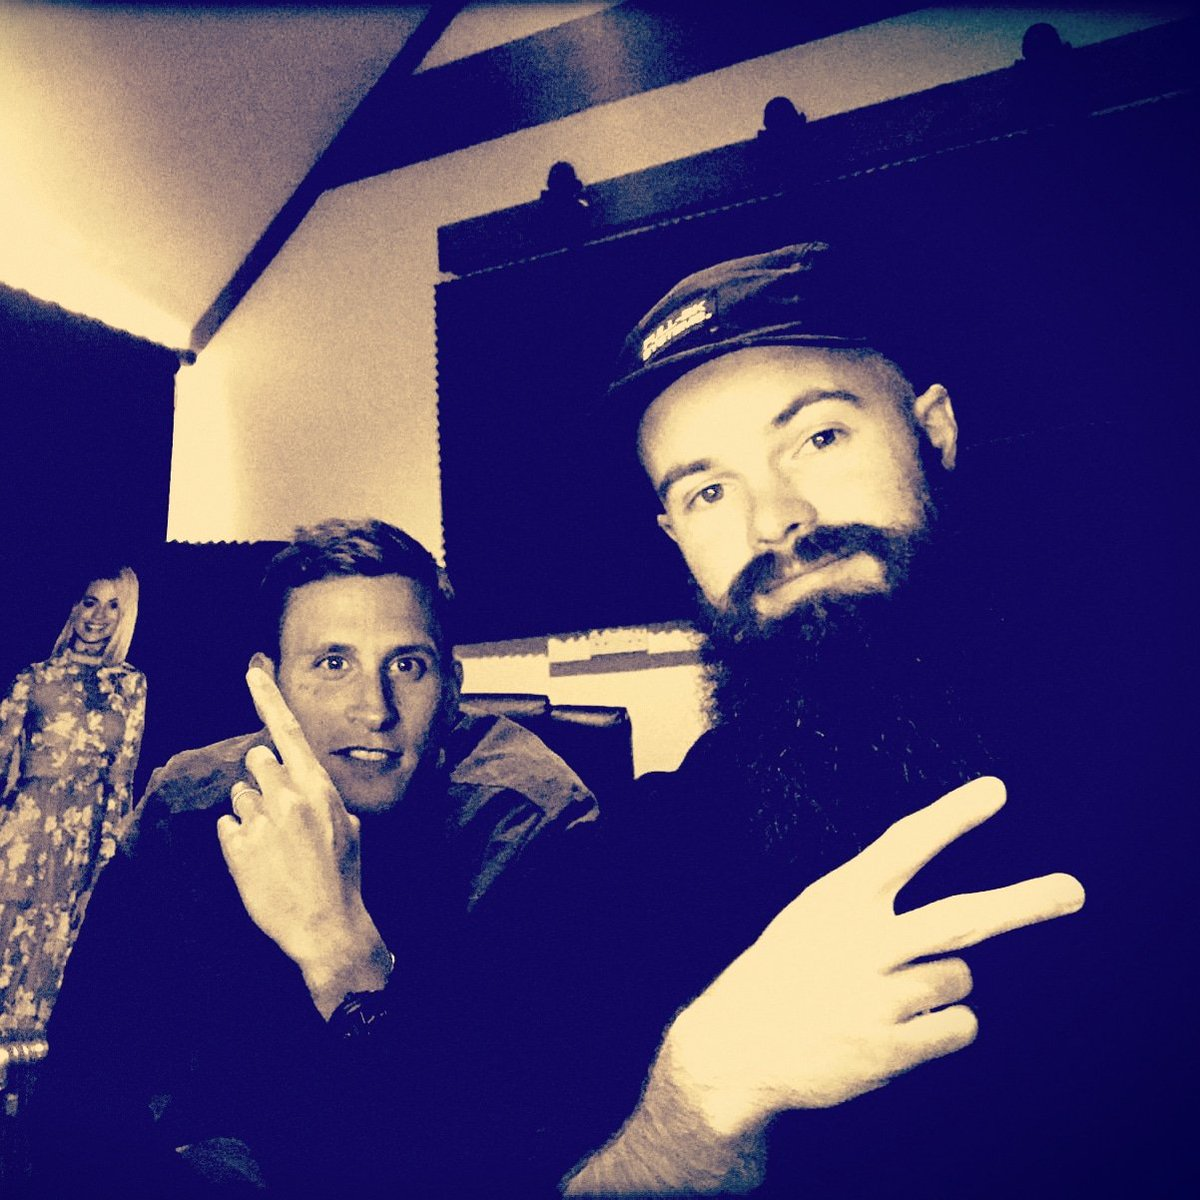 RT @Elibrownbeats Back IN thE studIO wIth @djwillclarke 🚀🚀🚀